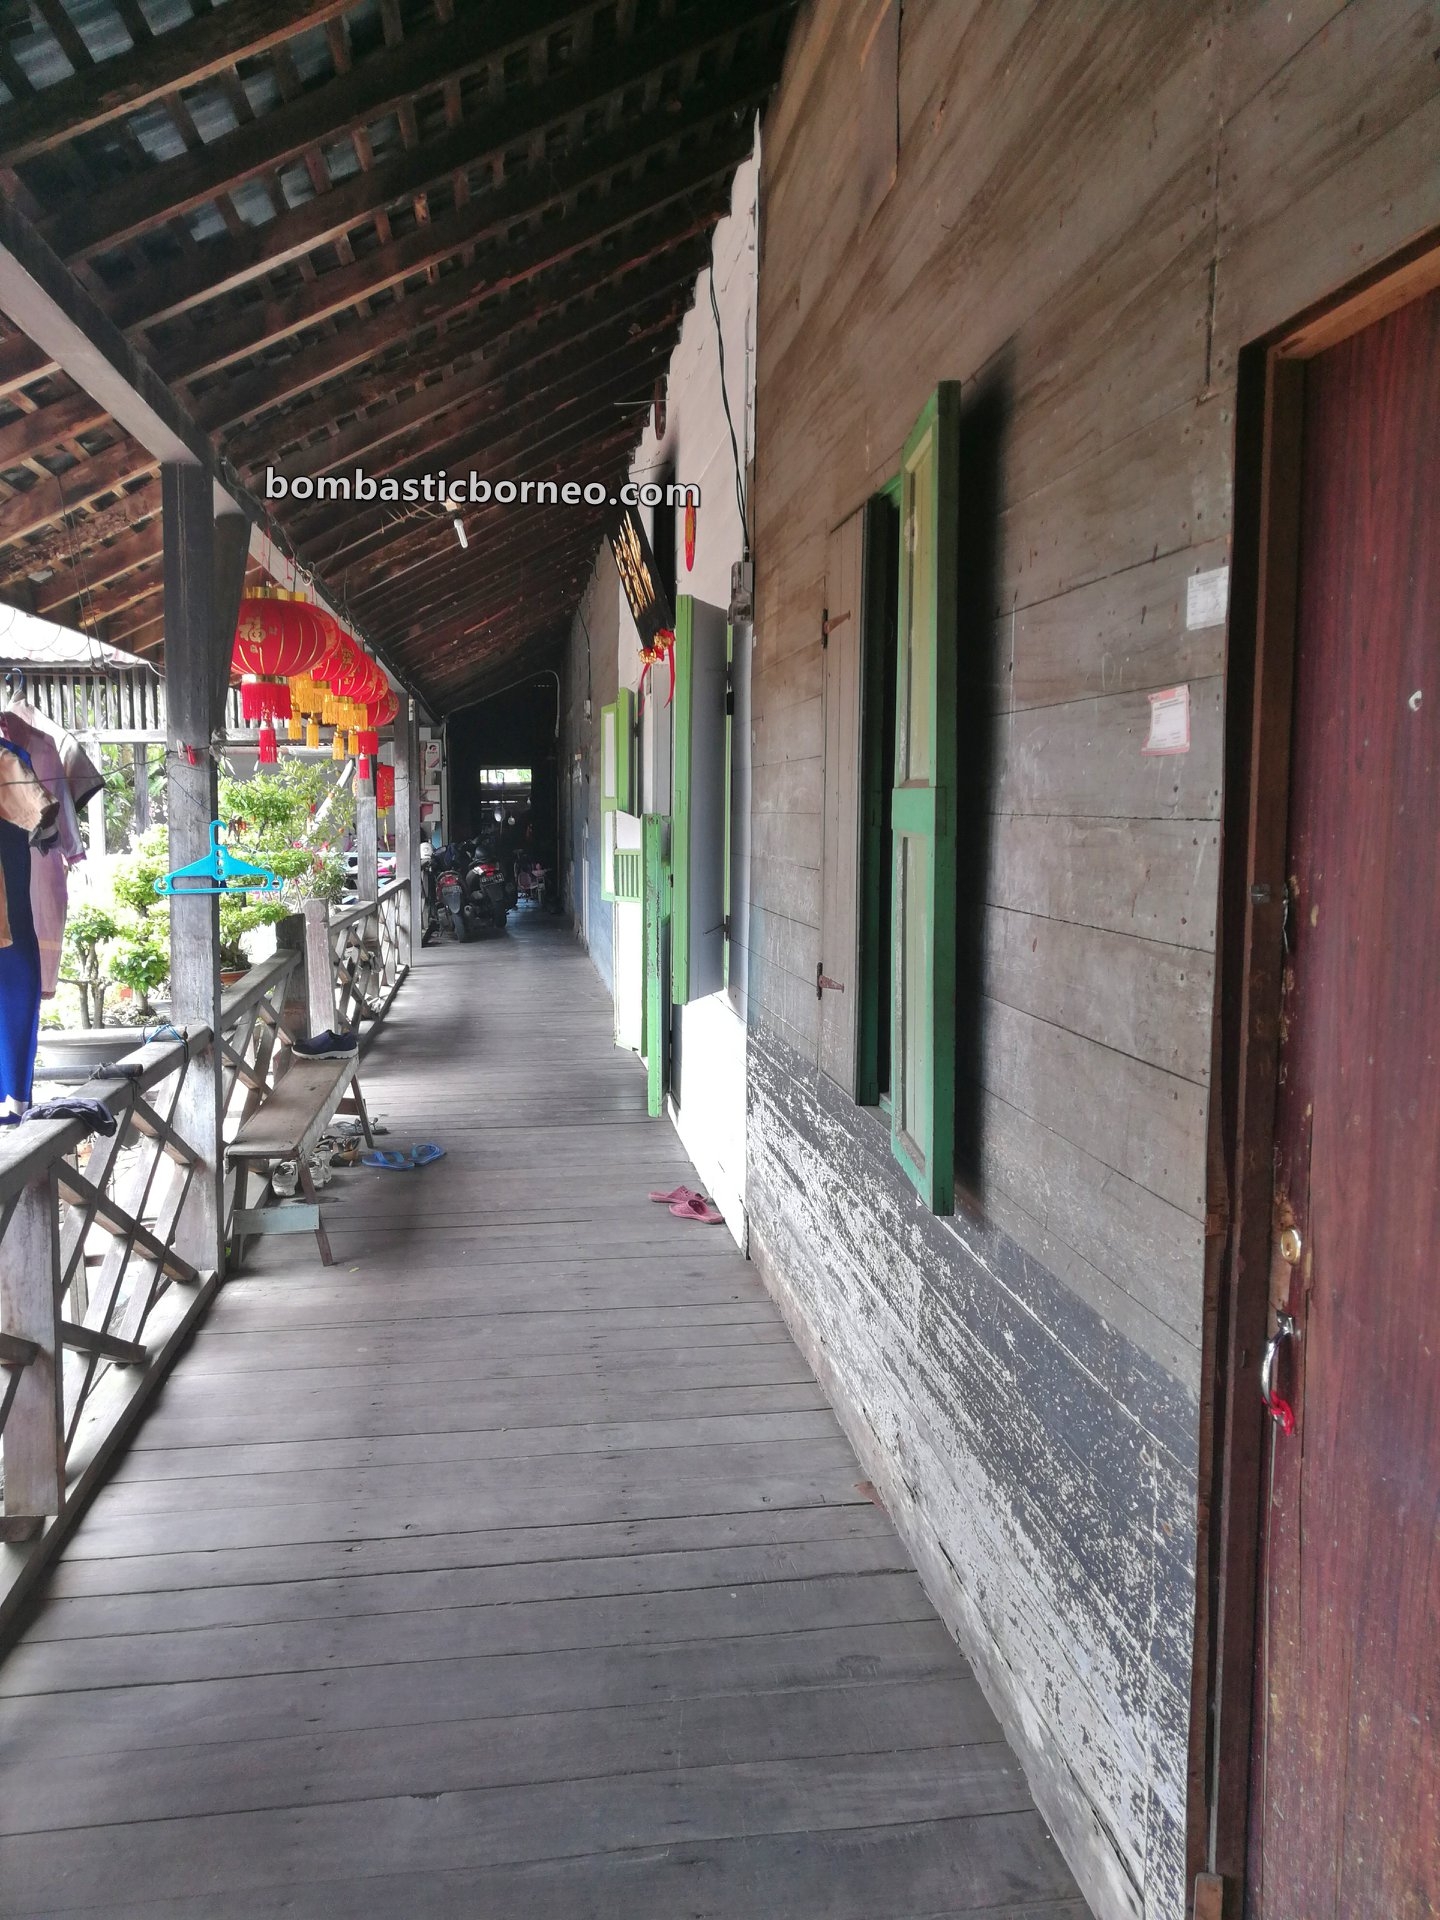 authentic, traditional house, TongHoa, chinese, heritage, history, Indonesia, West Kalimantan, Tourism, Travel Guide, Cross Border, Borneo, 探索婆罗洲游踪, 印尼西加里曼丹, 山口洋謝協勝遗产